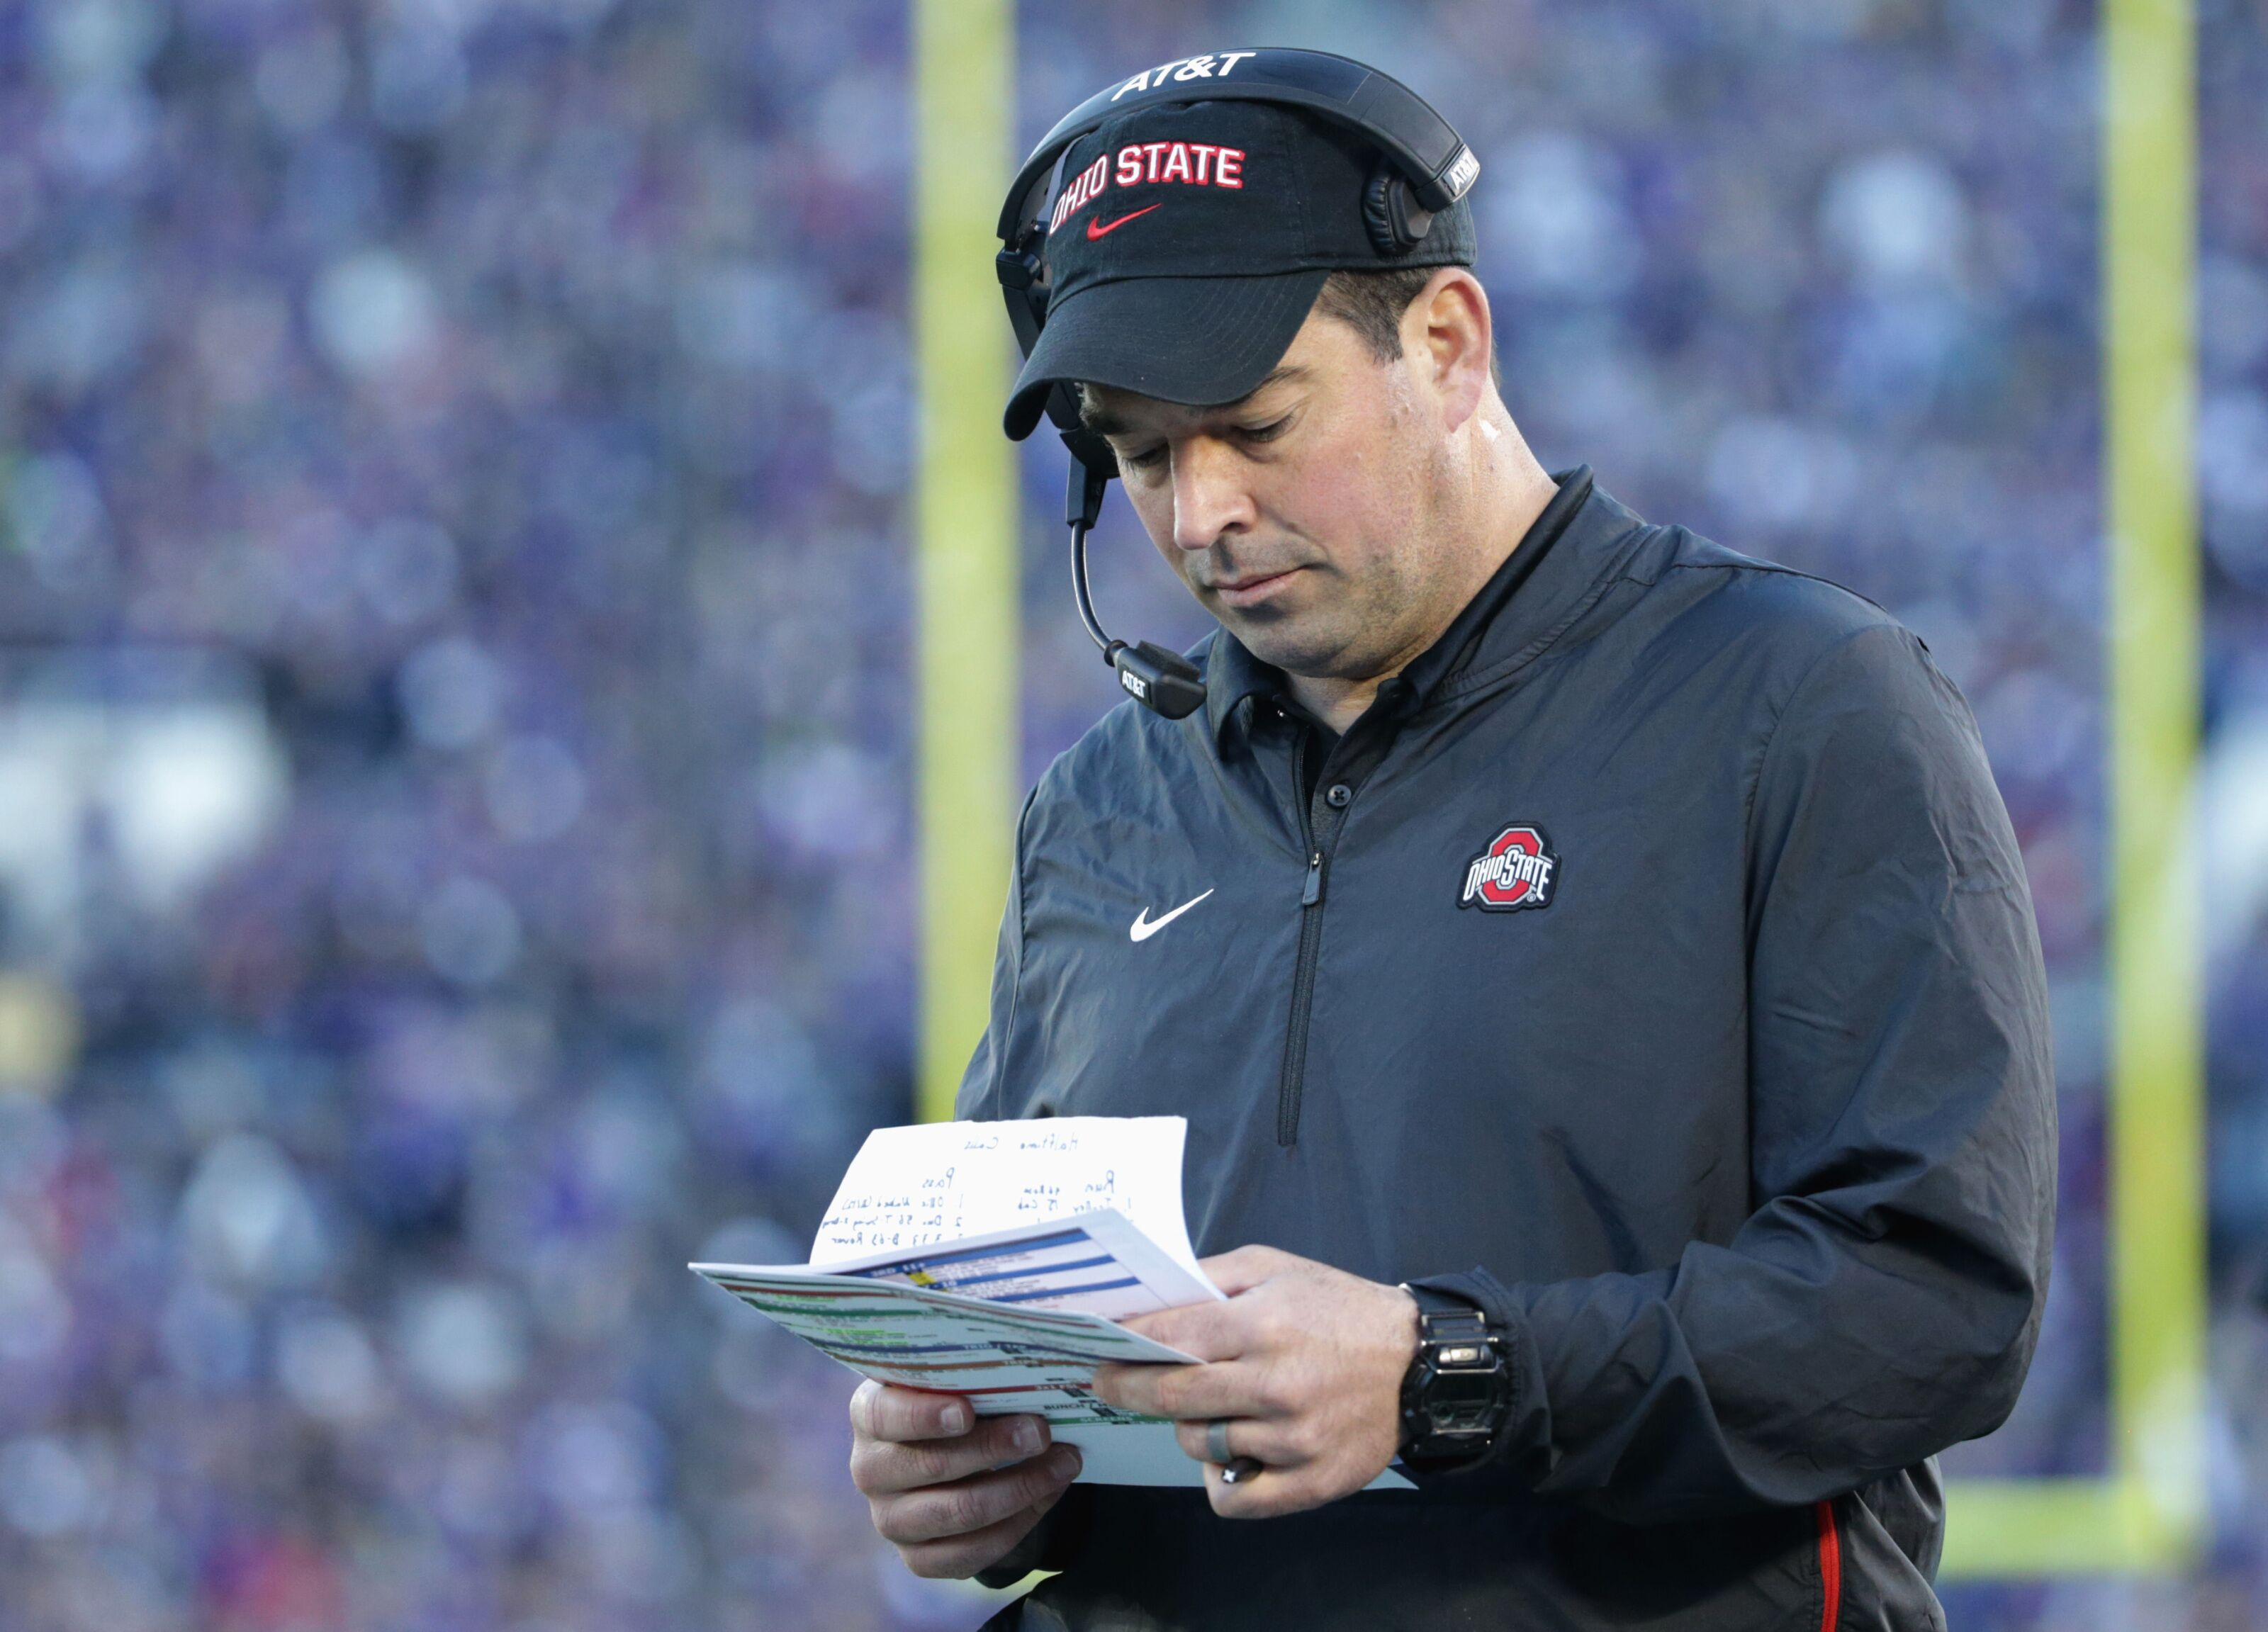 Ohio State Football: It's possible lightning could strike again